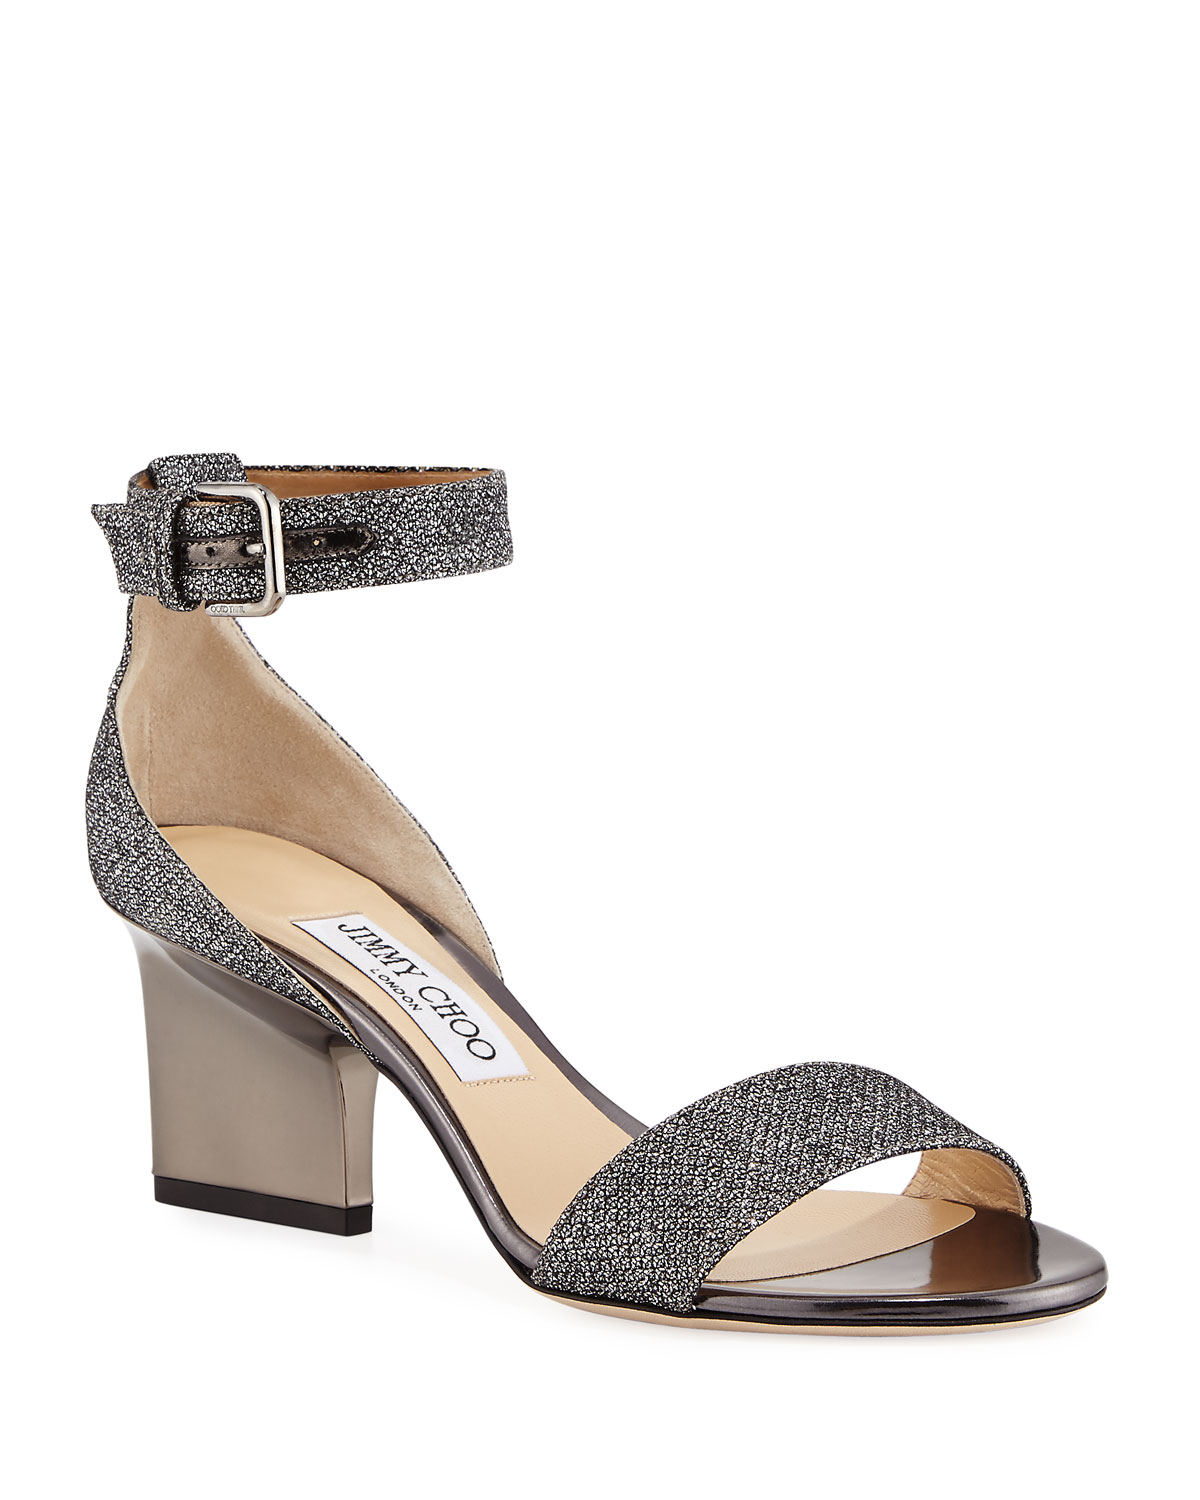 1768e3bca550 Jimmy Choo Edina Metallic Fabric Sandals